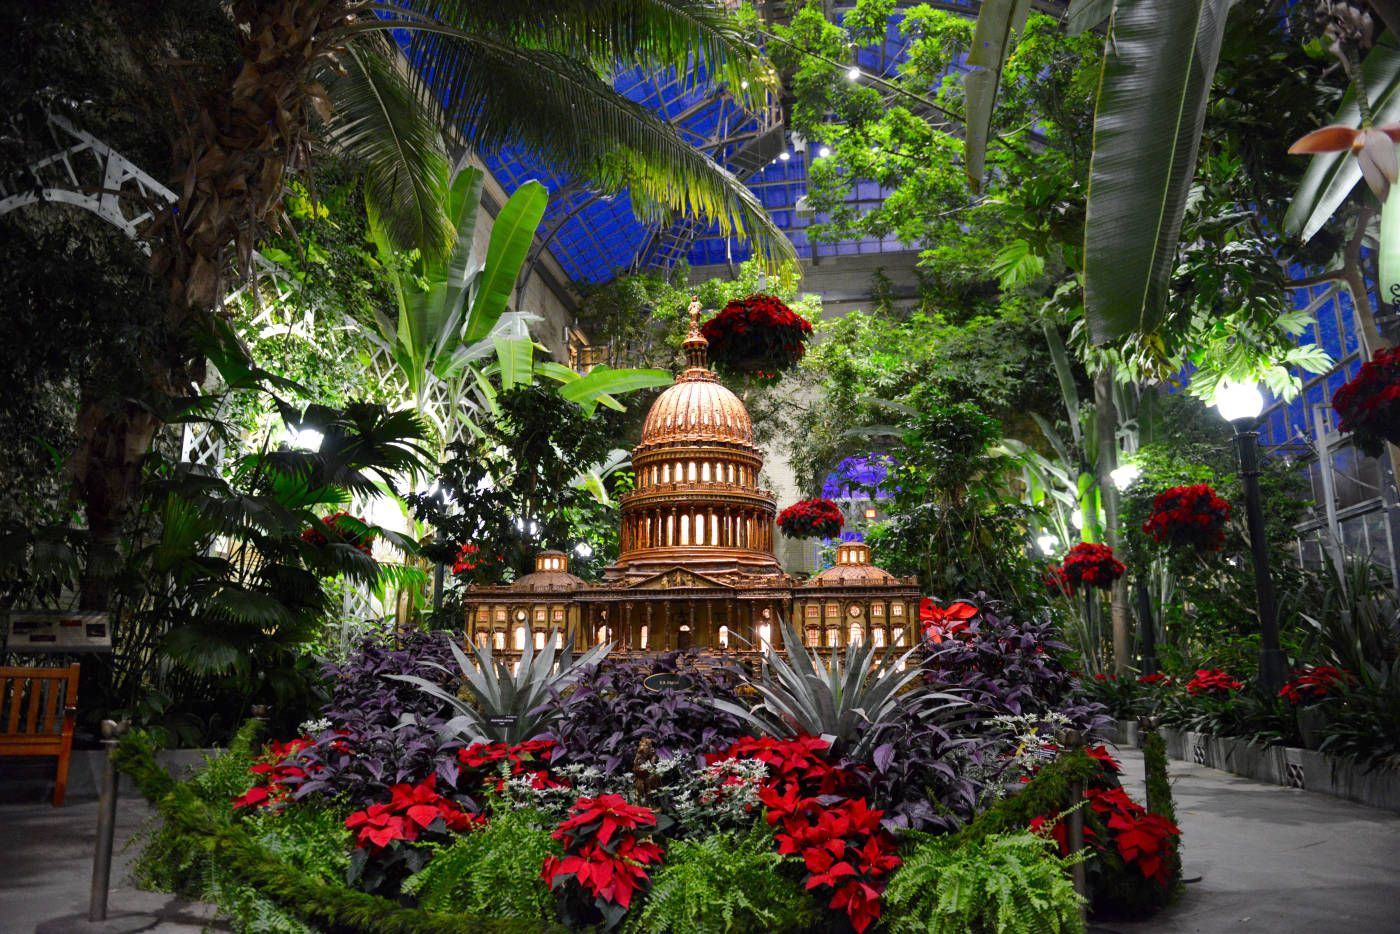 f7ab91368138a2d5c383d027fe46253f - Best Botanical Gardens In United States